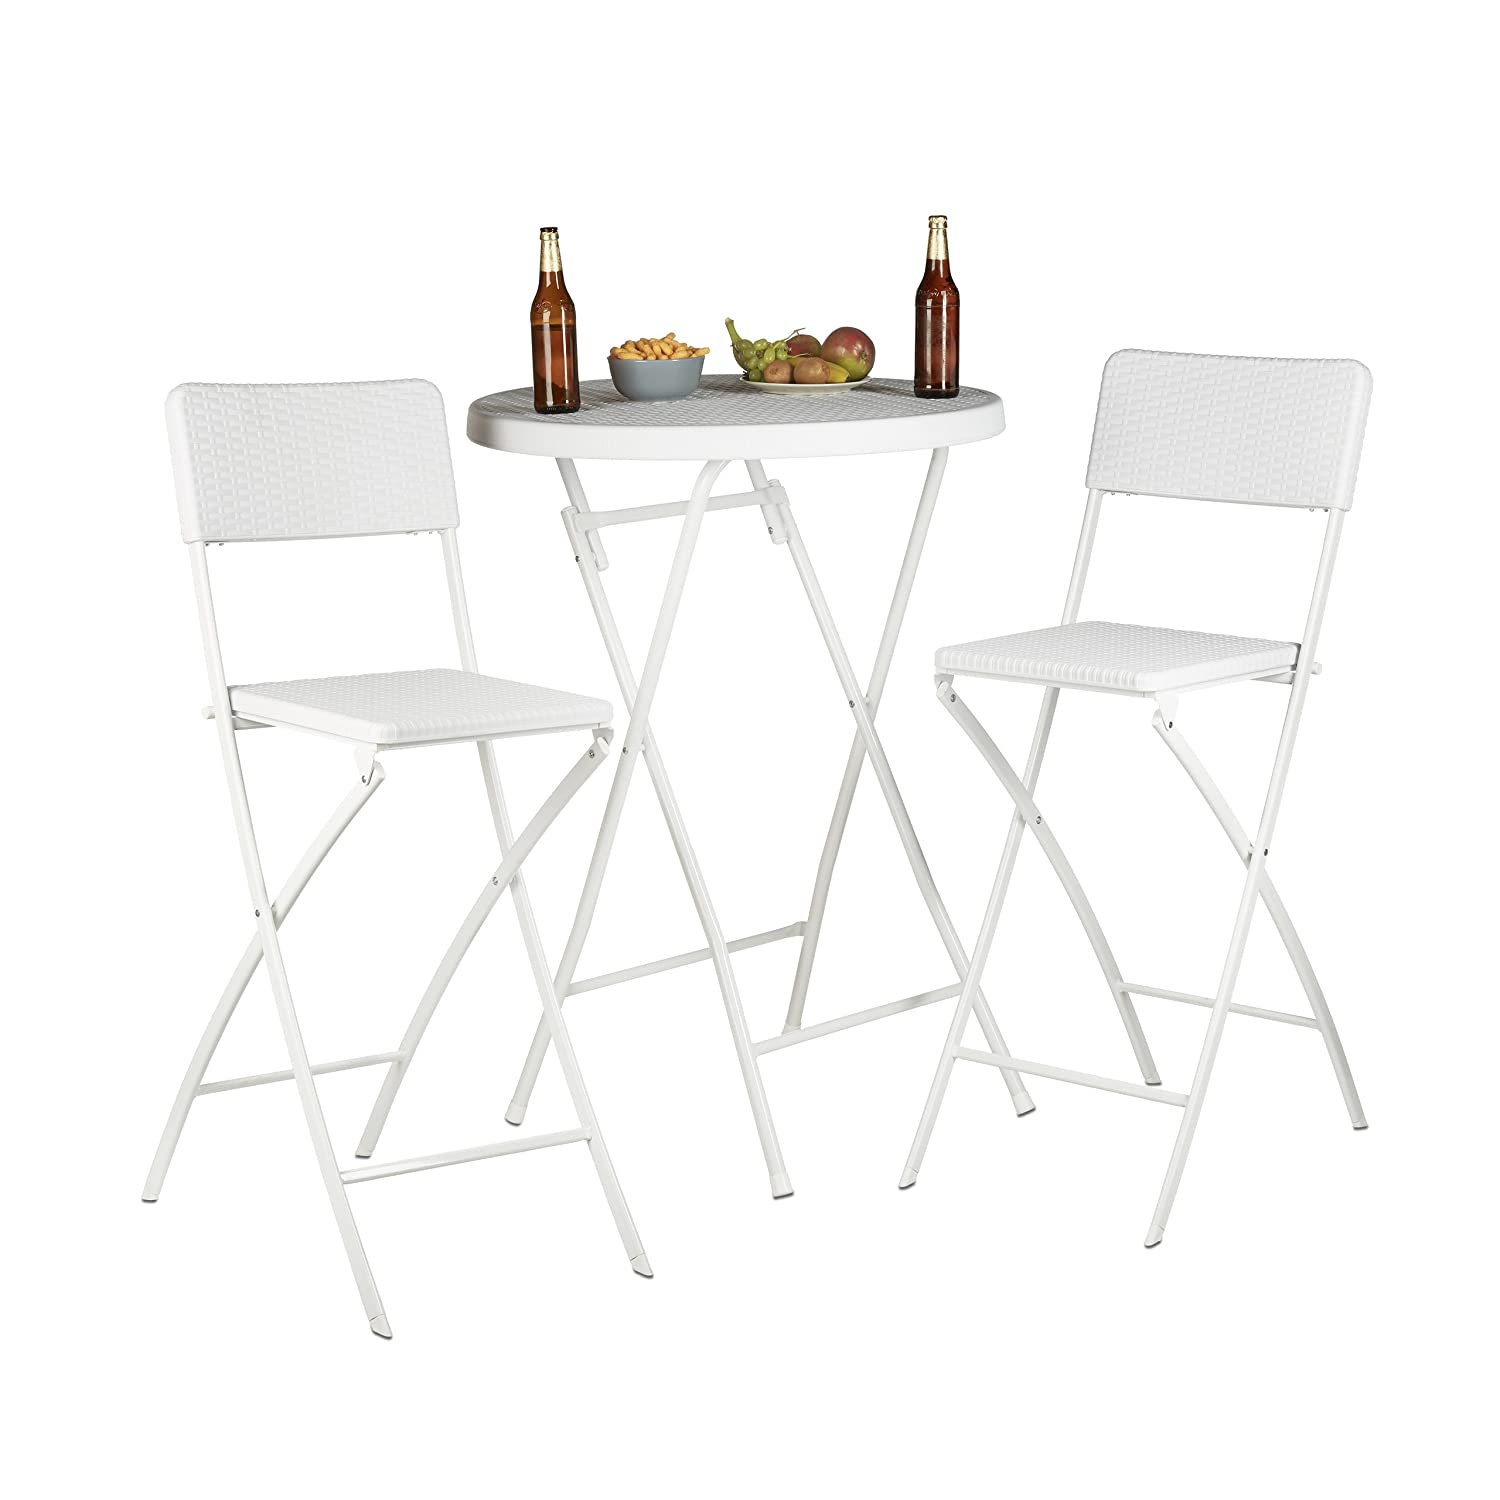 Wondrous Relaxdays Bastian Folding Bar Stools Rattan Look Backrest Bistro Chairs Foldable 78 Cm Tall Counter Height White Lamtechconsult Wood Chair Design Ideas Lamtechconsultcom